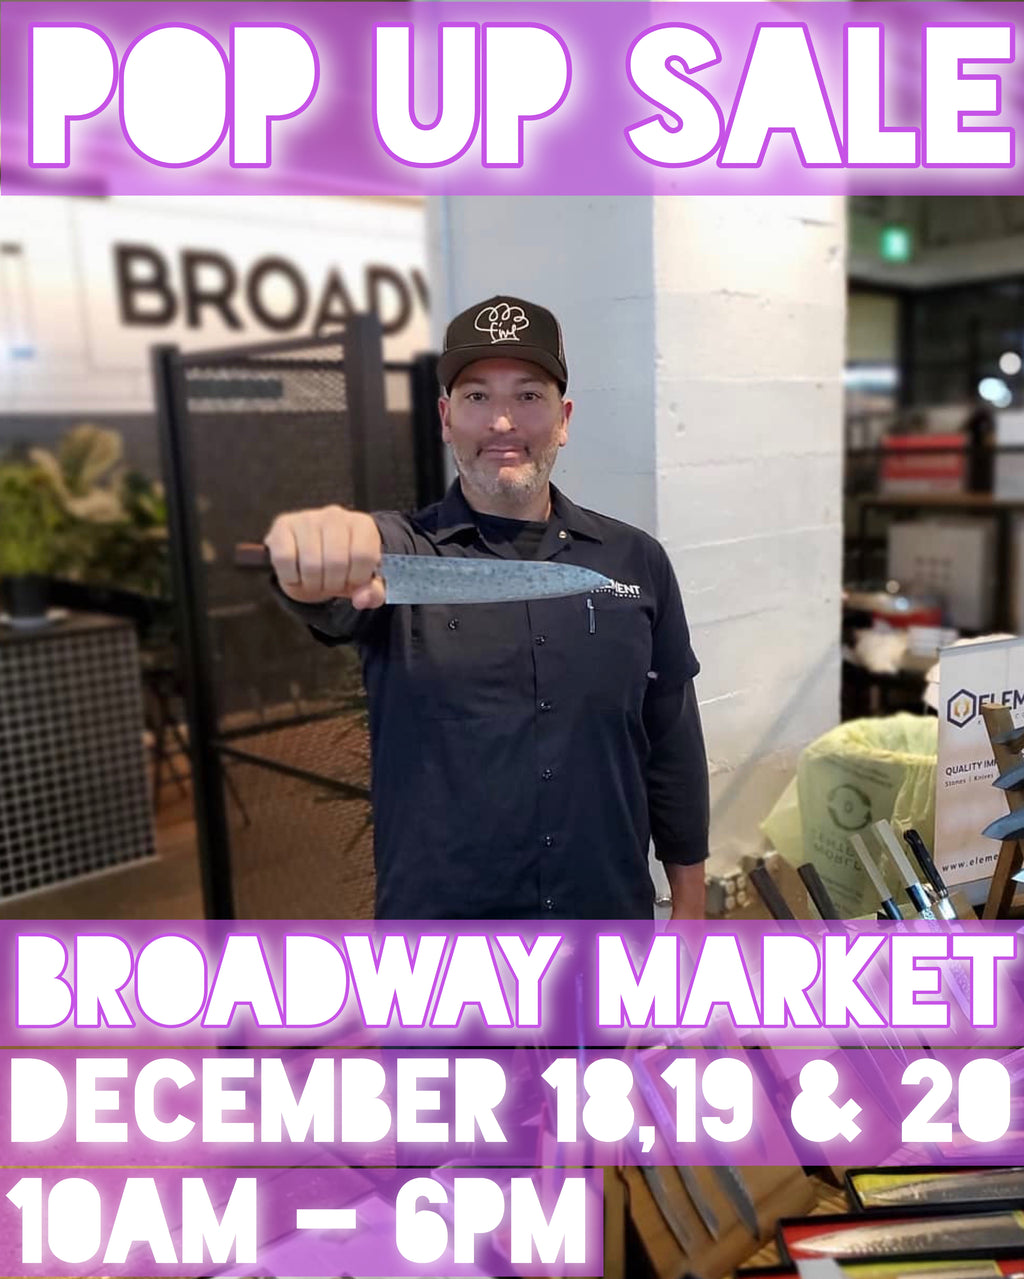 Pop up sale - The Broadway Market Denver